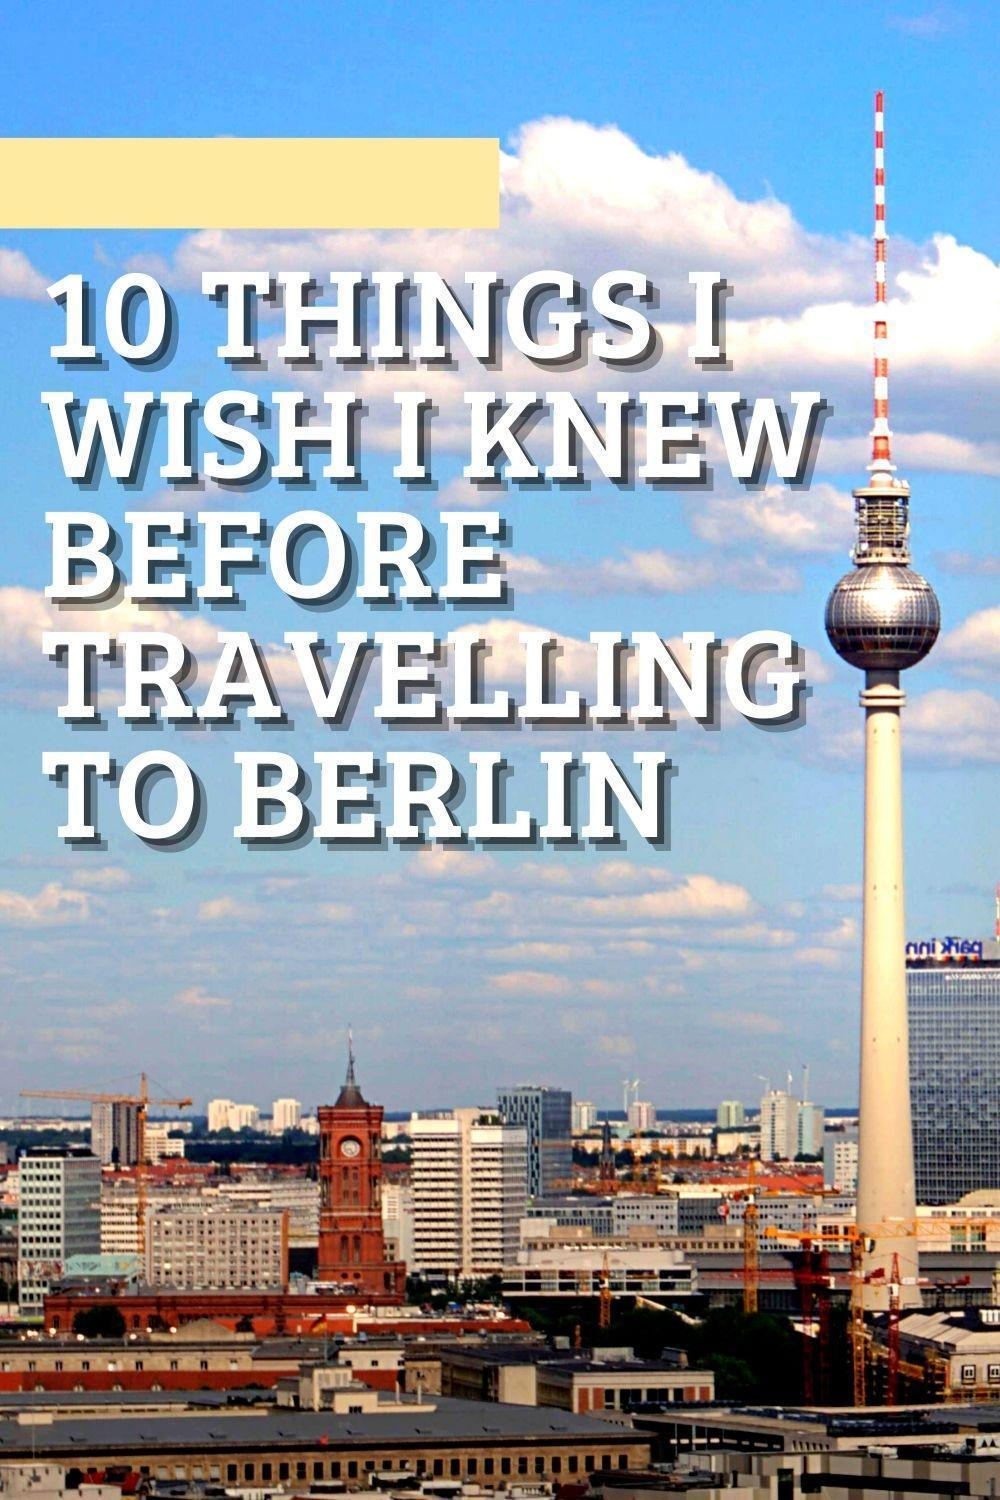 10 Things I Wish I Knew Before Travelling To Berlin